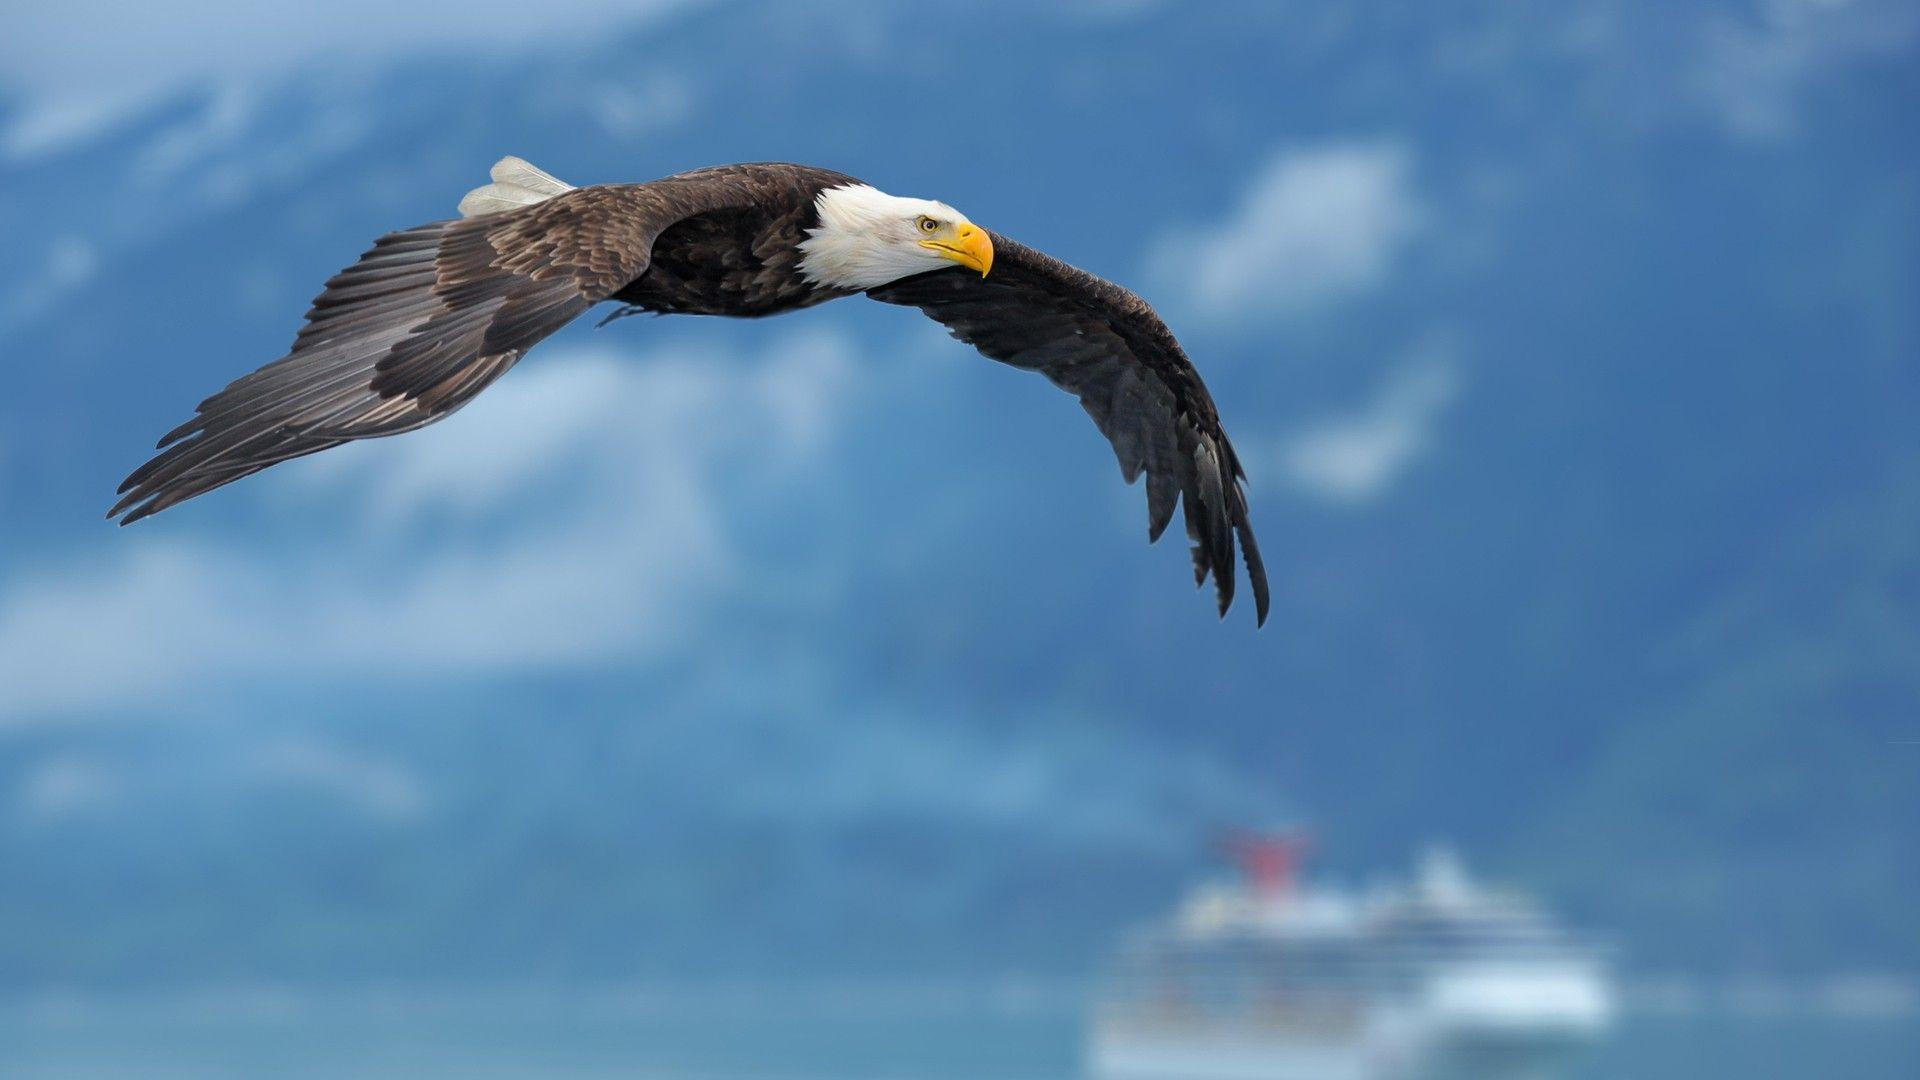 Download Flying Bald Eagle Wallpapers